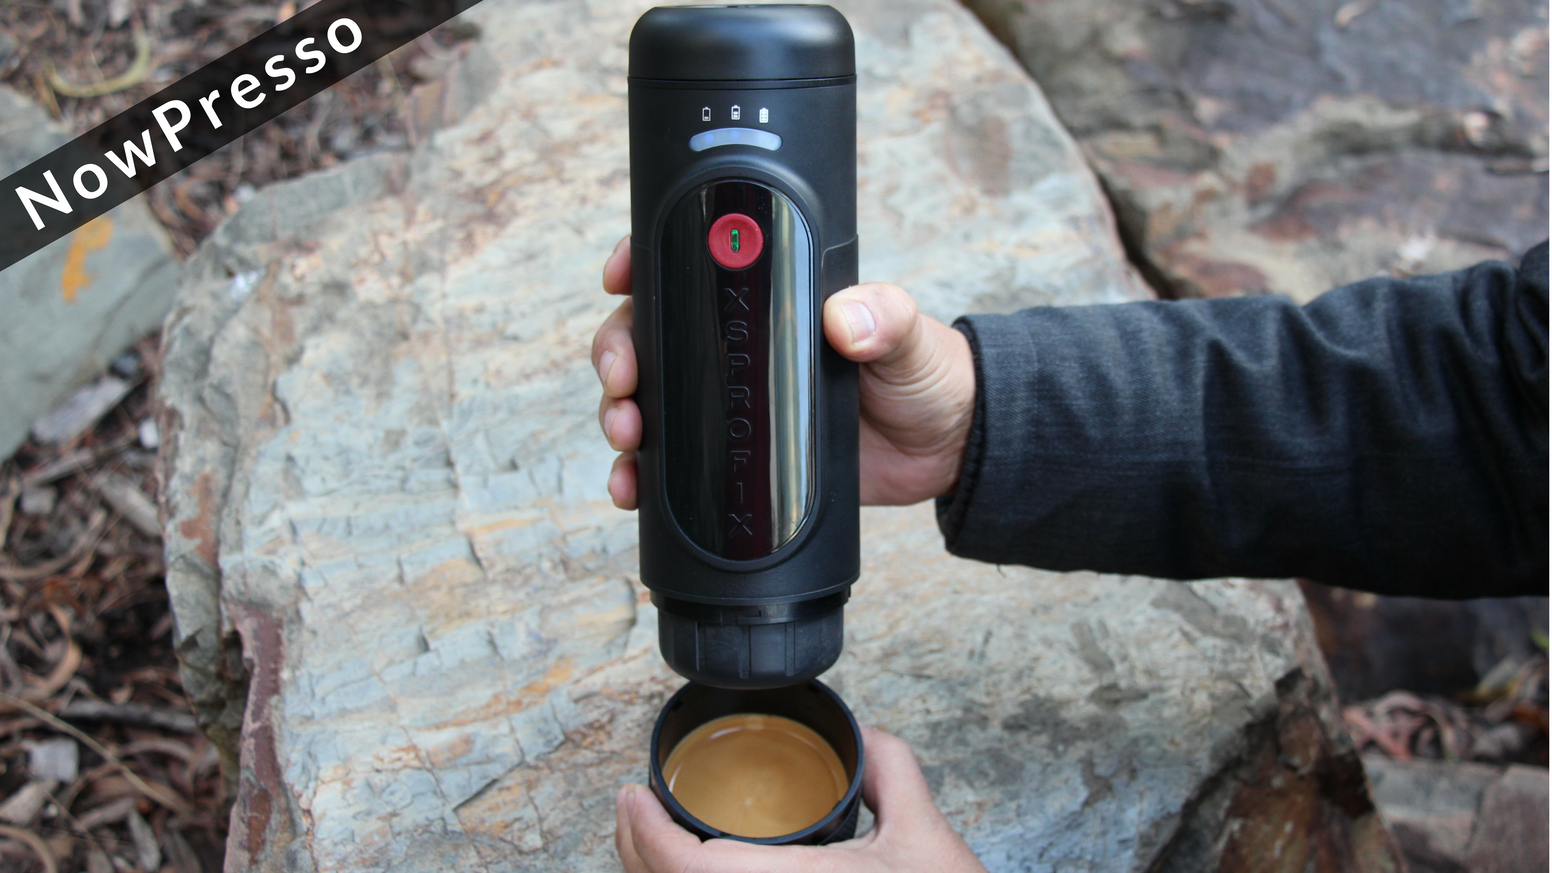 Automatically pumps and pours coffee for you into detachable drinking cup. Boils Water anywhere you go. Operates from one button. Powered by removable lithium battery. Use Nespresso® Capsules or your Espresso Grind.